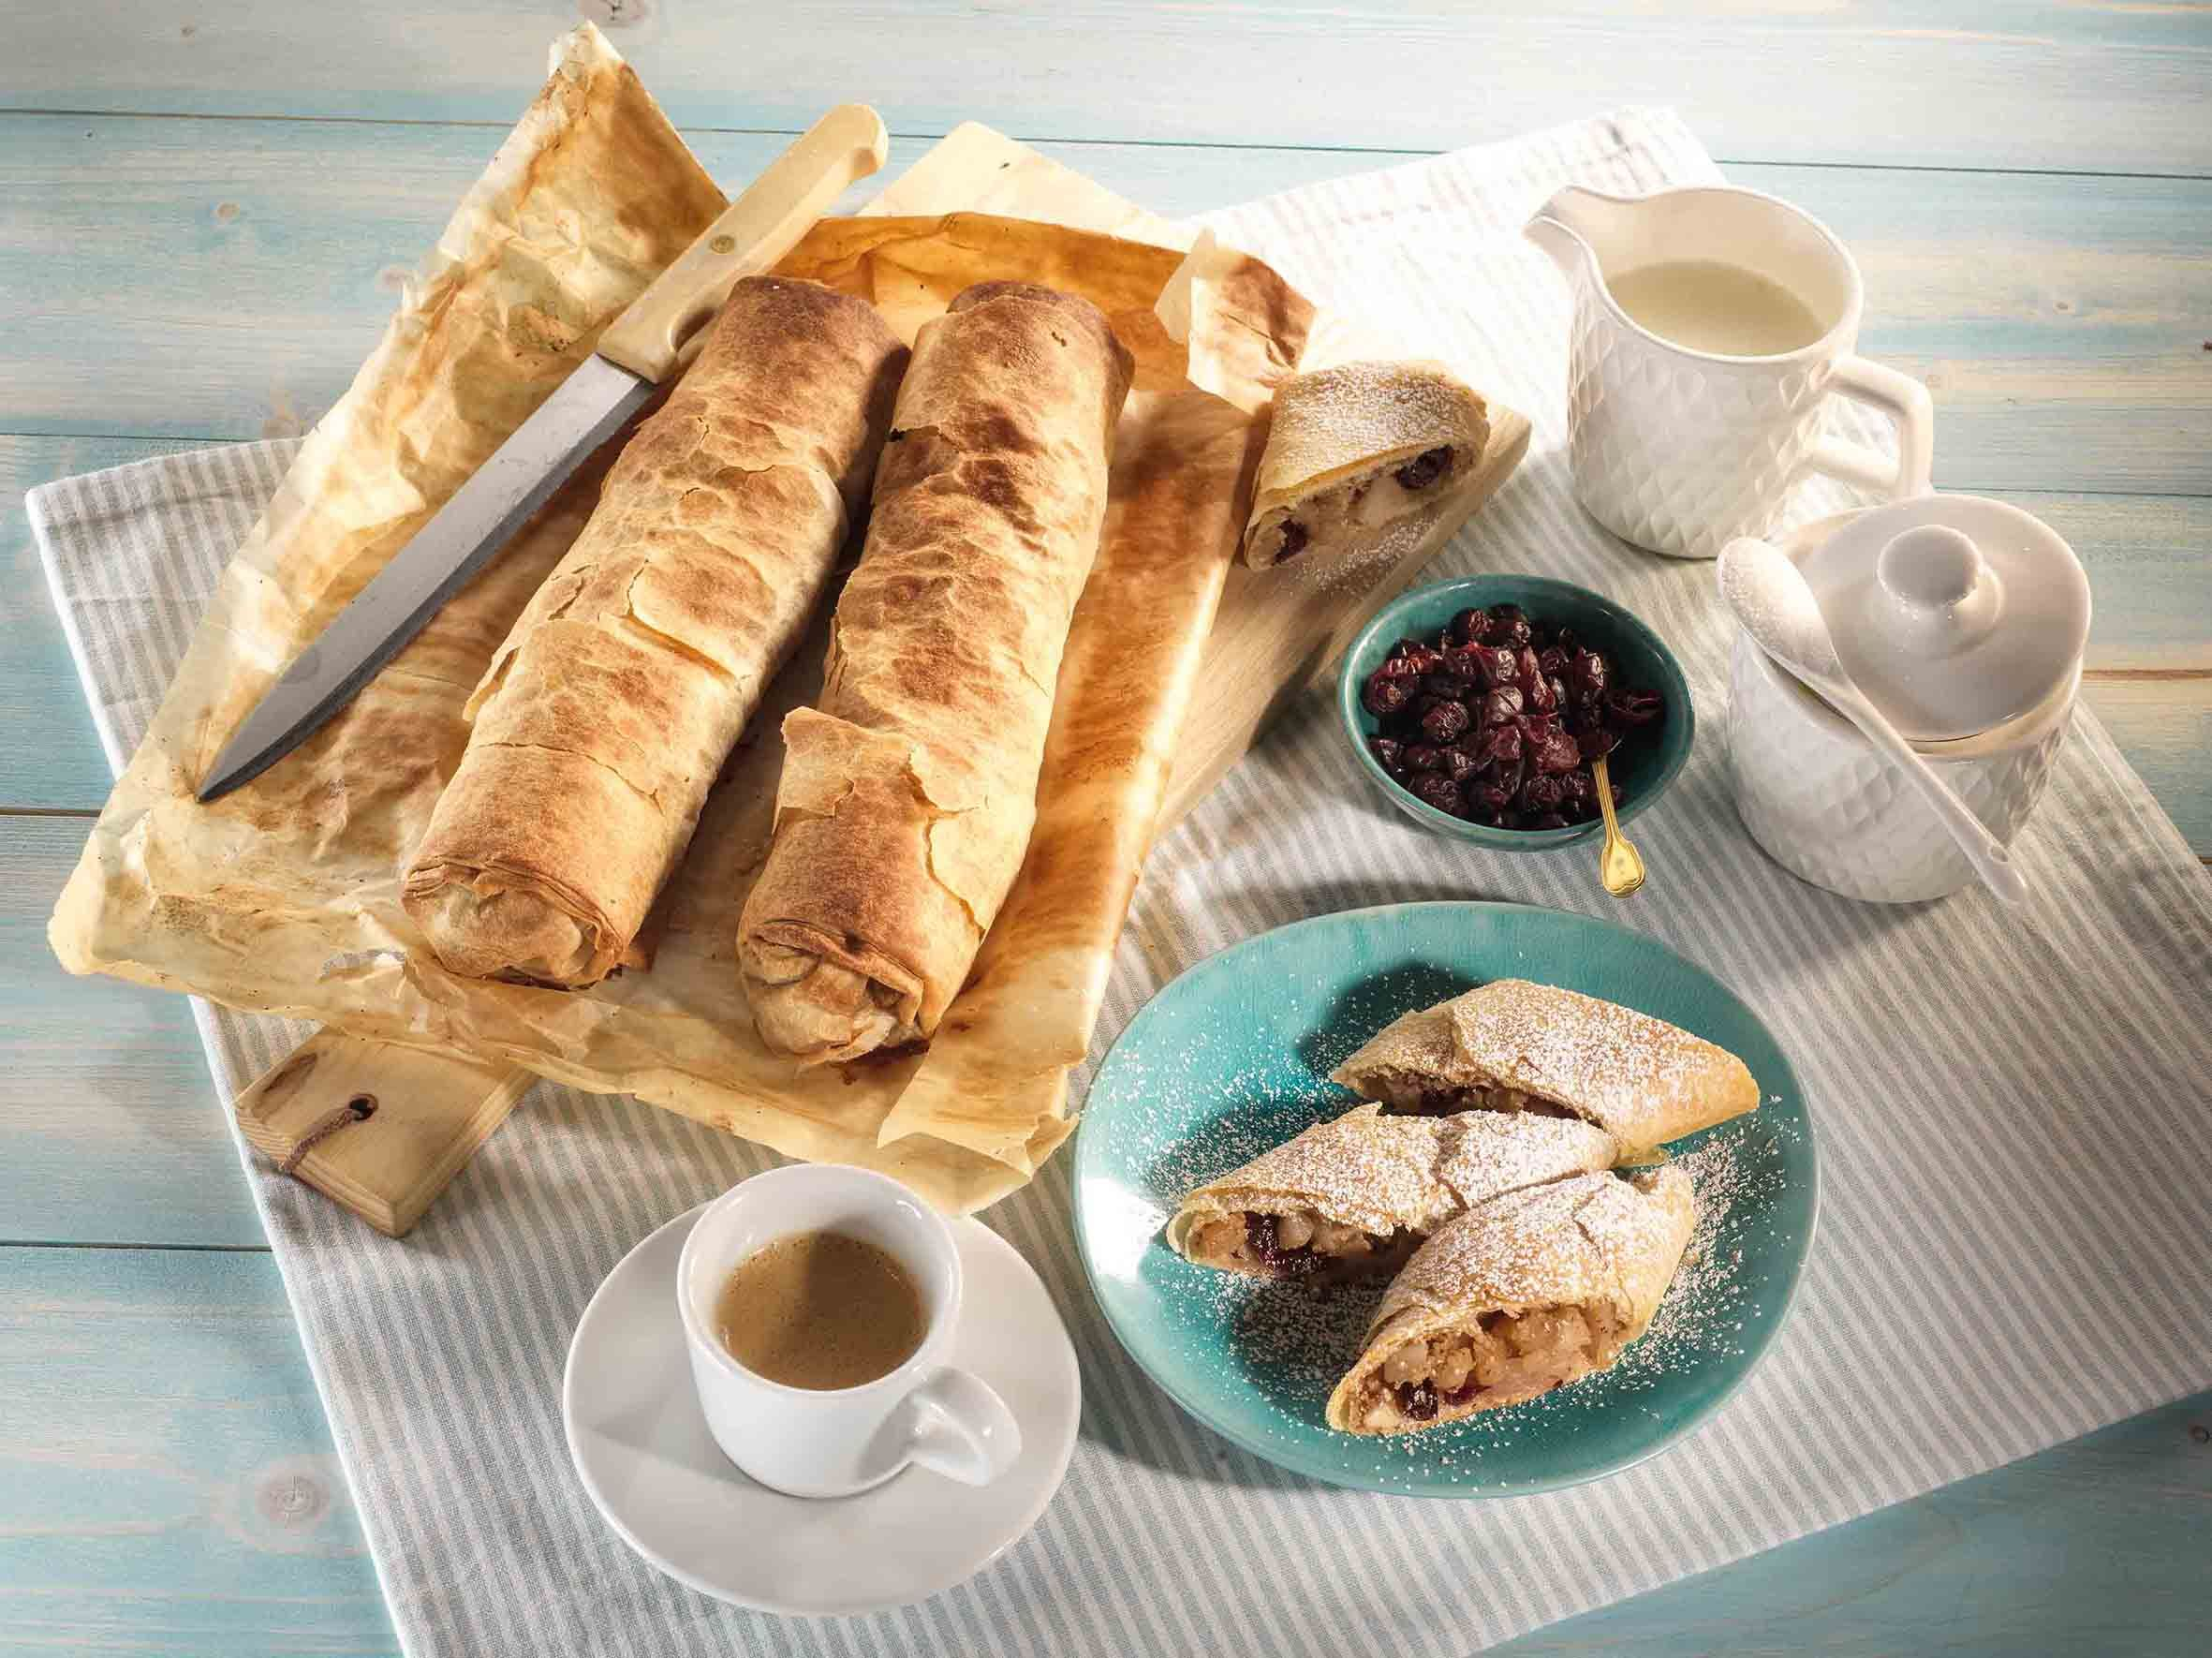 cranberry strudel rezept vegane rezepte so einfach gut pinterest birnen apfel und. Black Bedroom Furniture Sets. Home Design Ideas